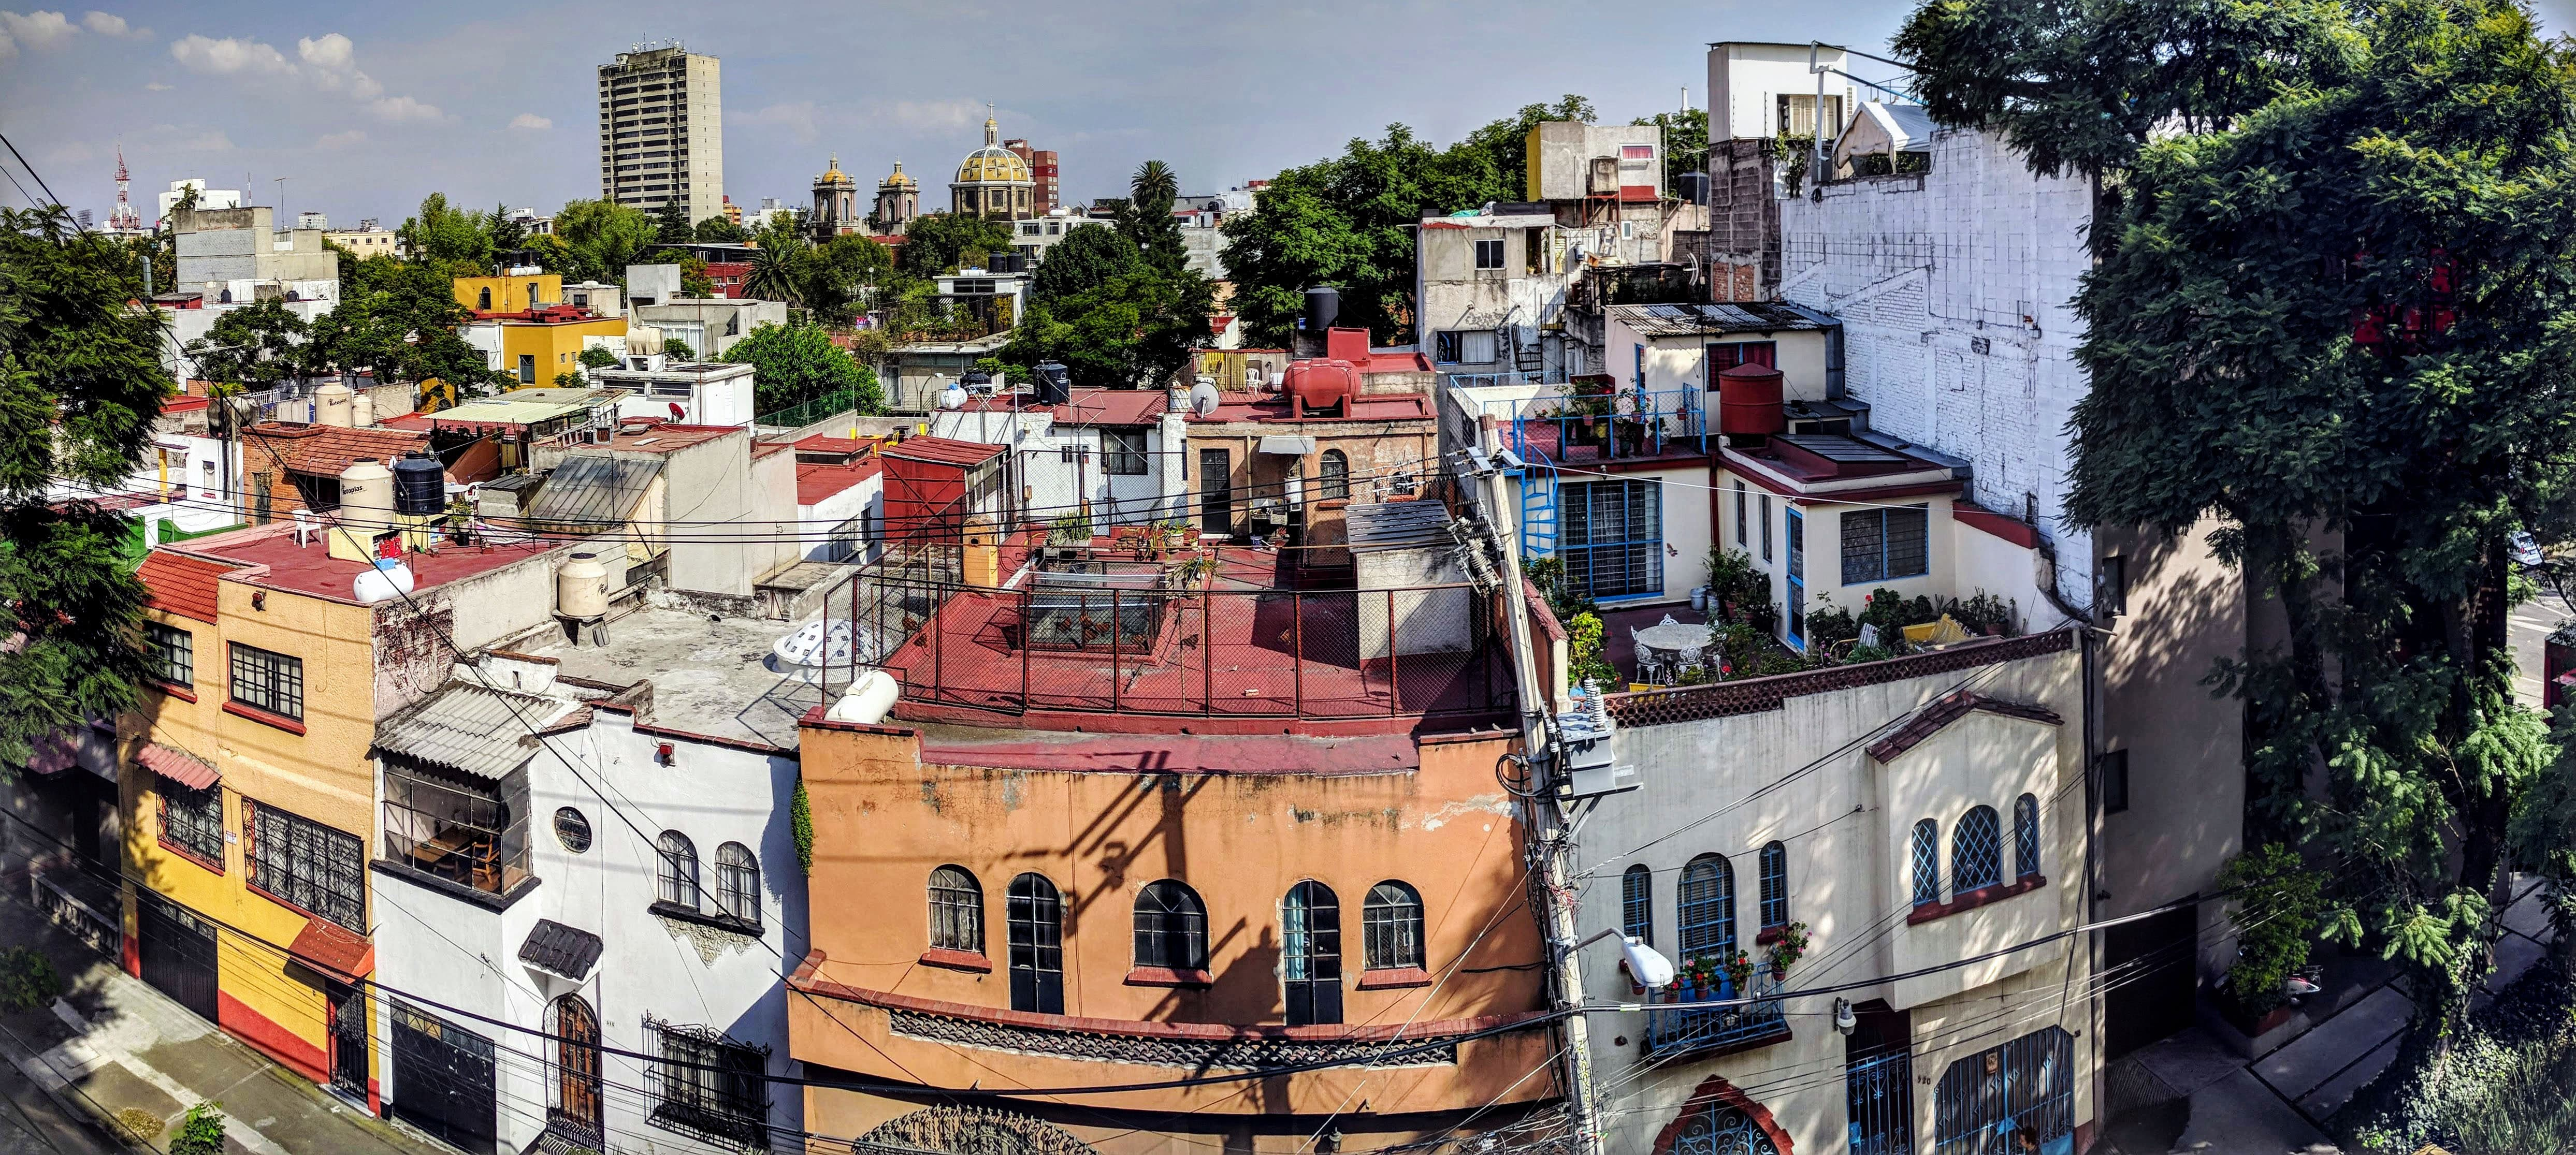 Condesa is one of the best neighborhoods to stay in Mexico City